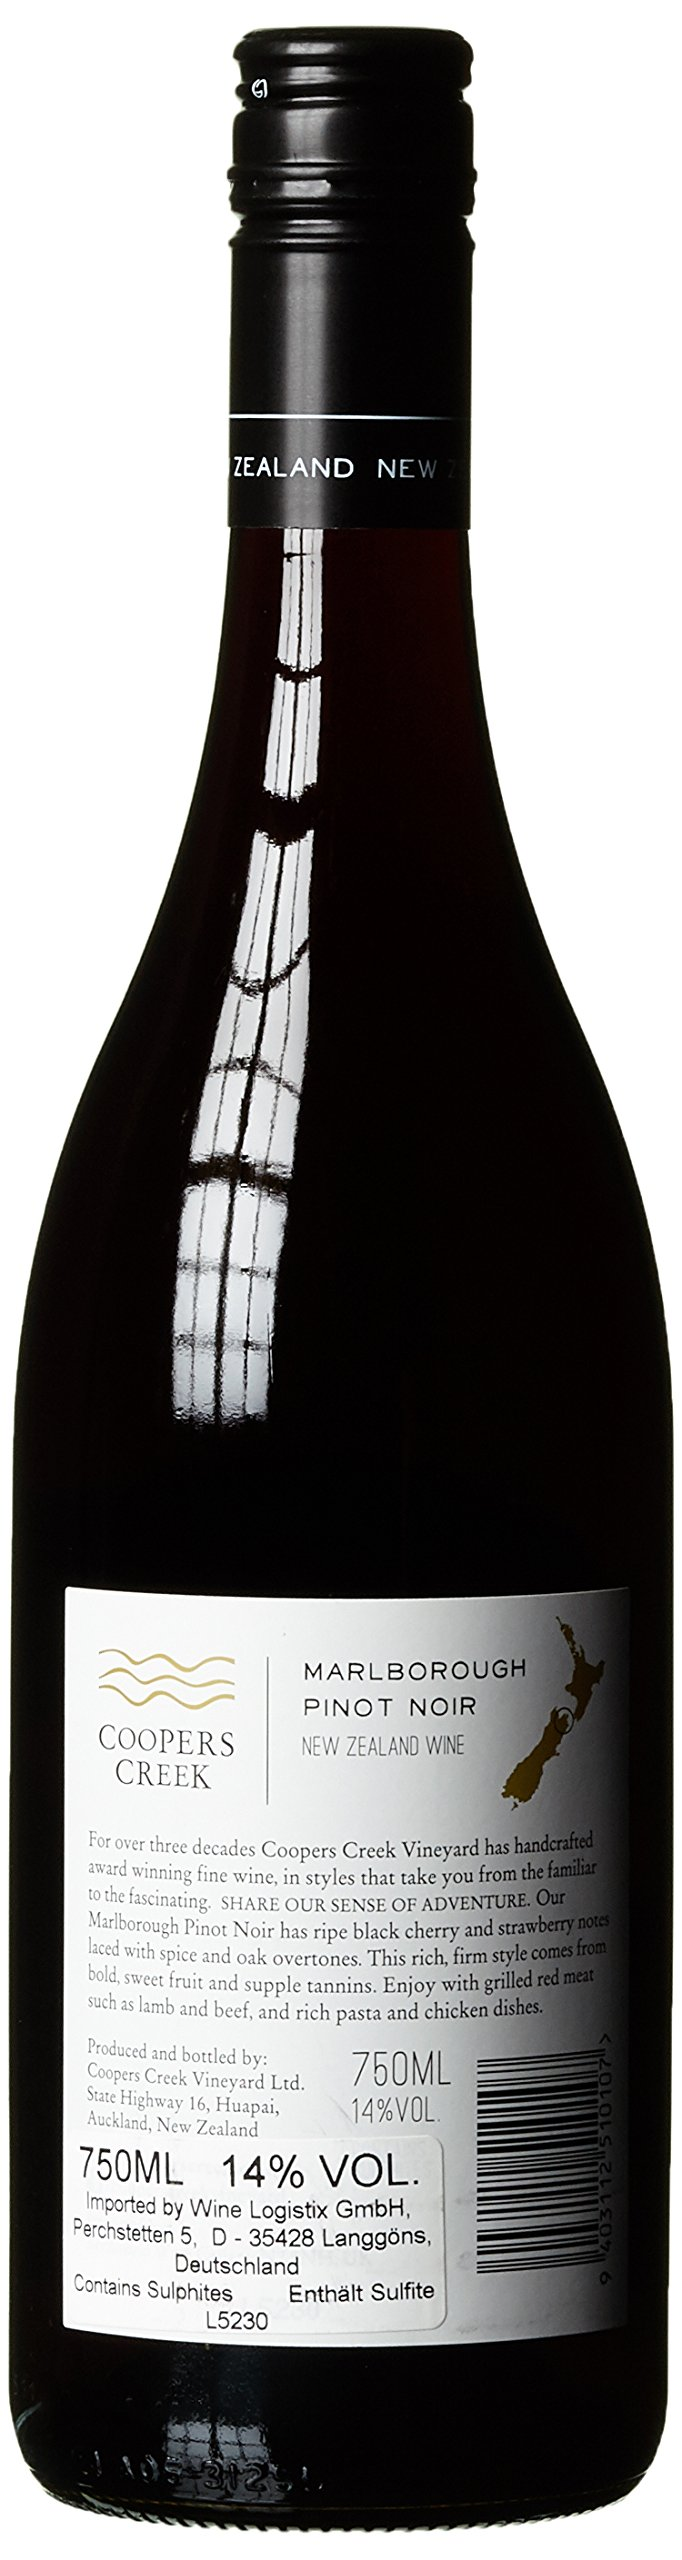 Coopers-Creek-Marlborough-Pinot-Noir-Sptburgunder-2013-trocken-3-x-075-l